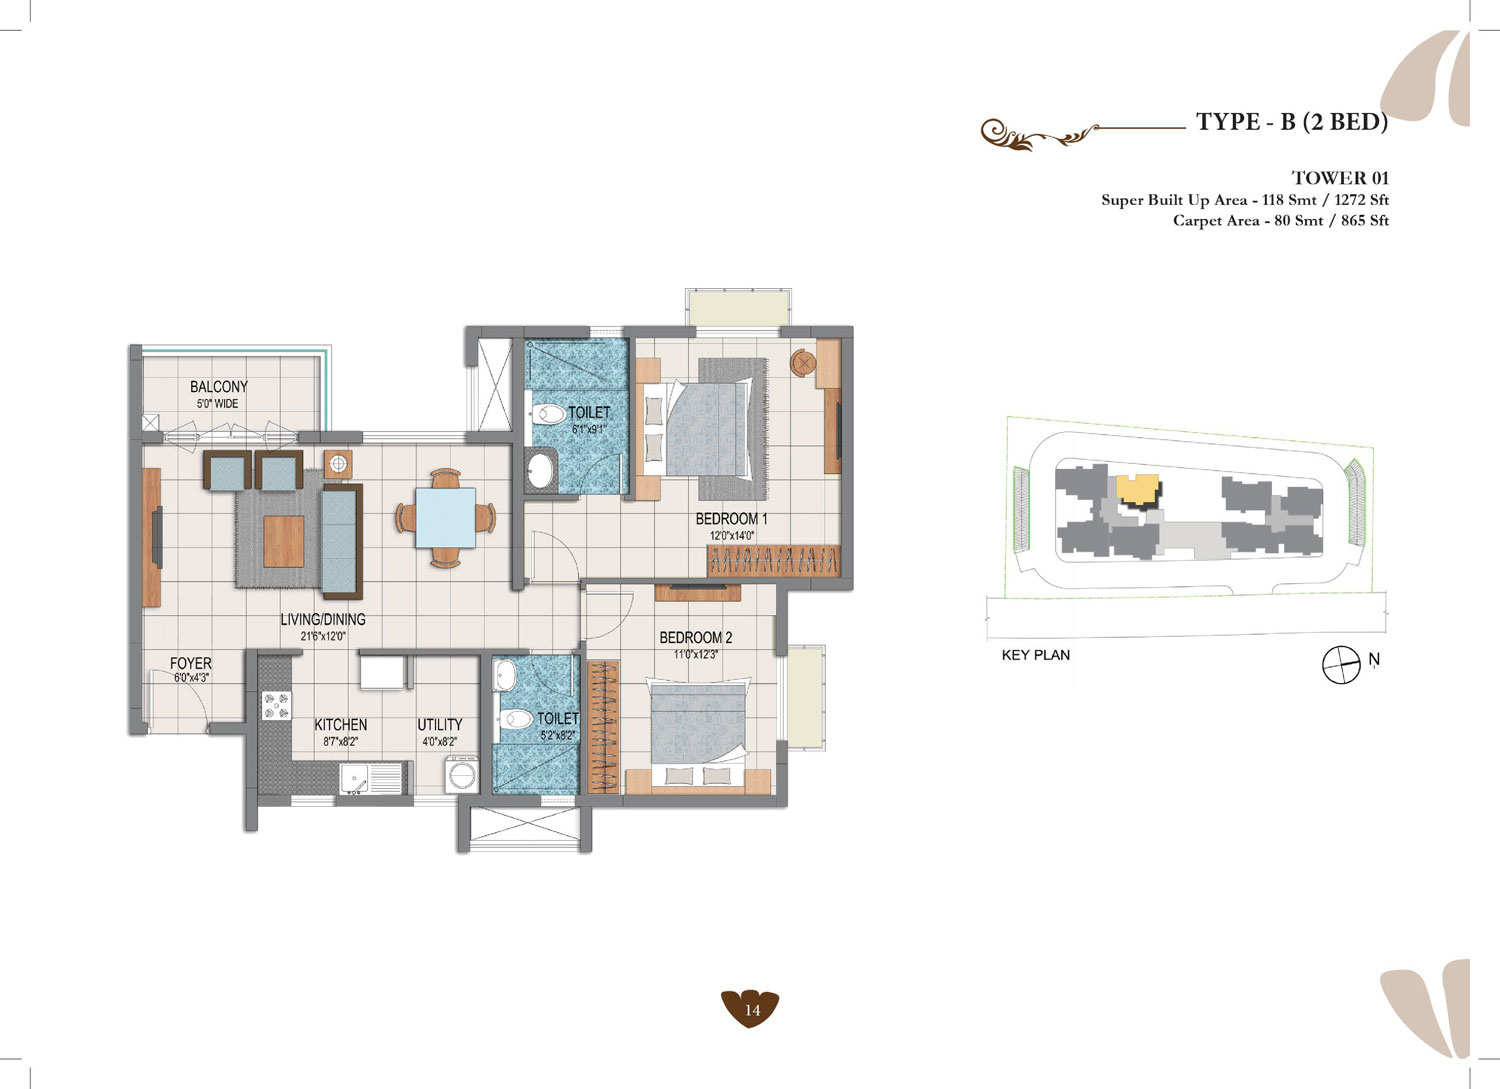 Type B - 2 Bed - 1272 Sq Ft